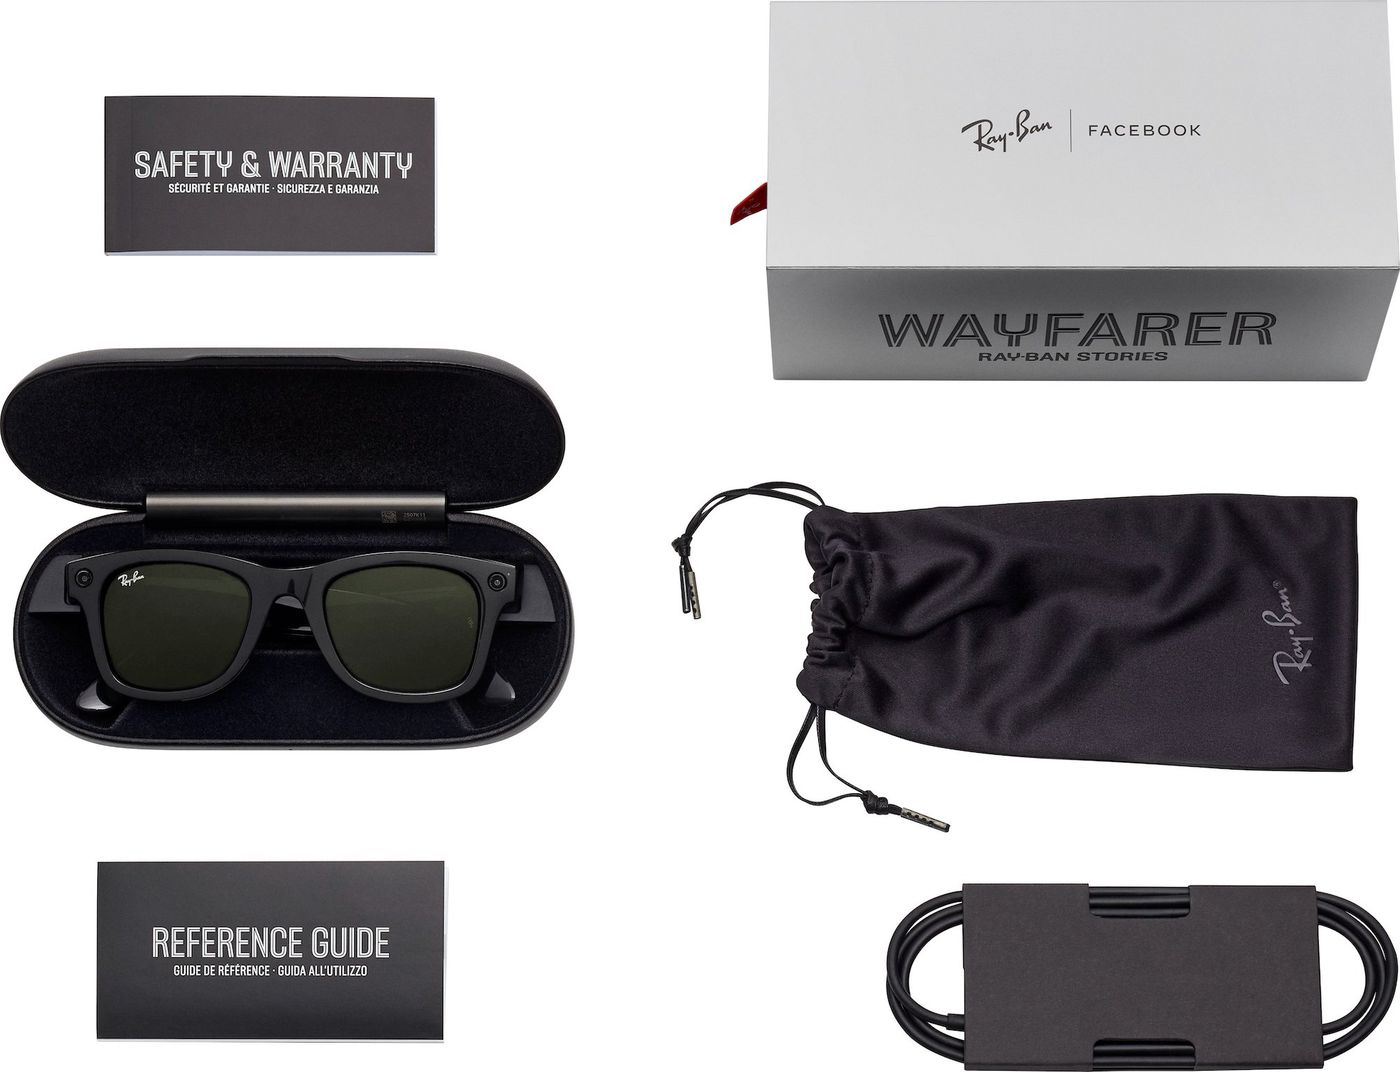 Facebook Ray-Ban Stories Smart Glasses_HYBRID RITUALS